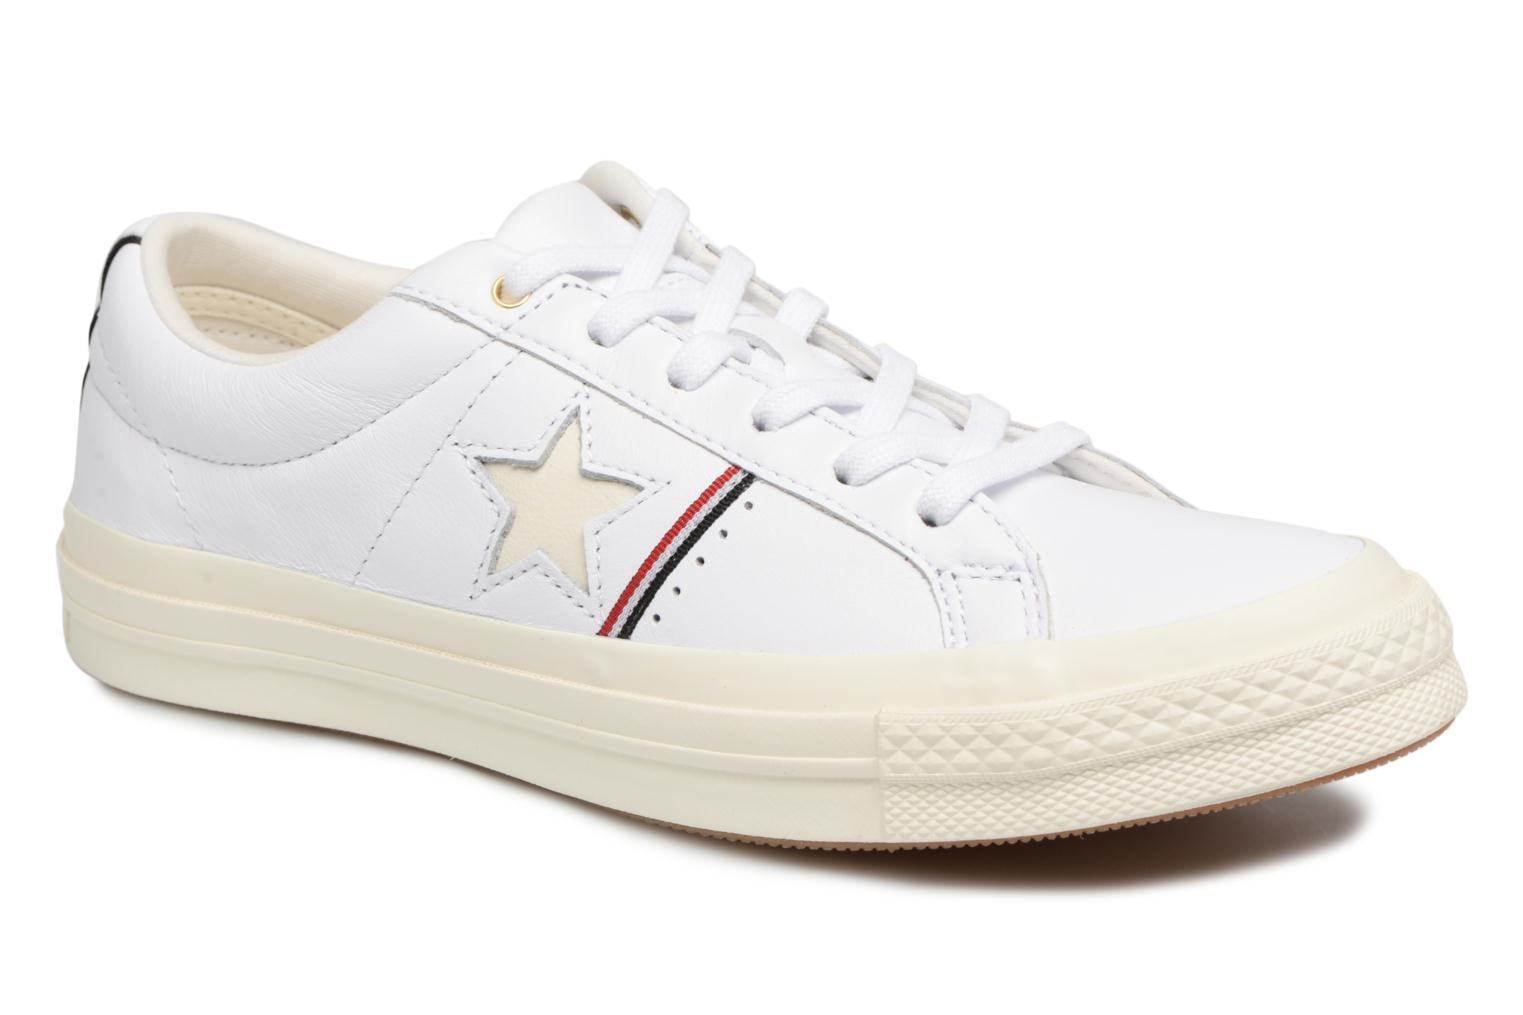 Converse One Star Piping Pack Ox W